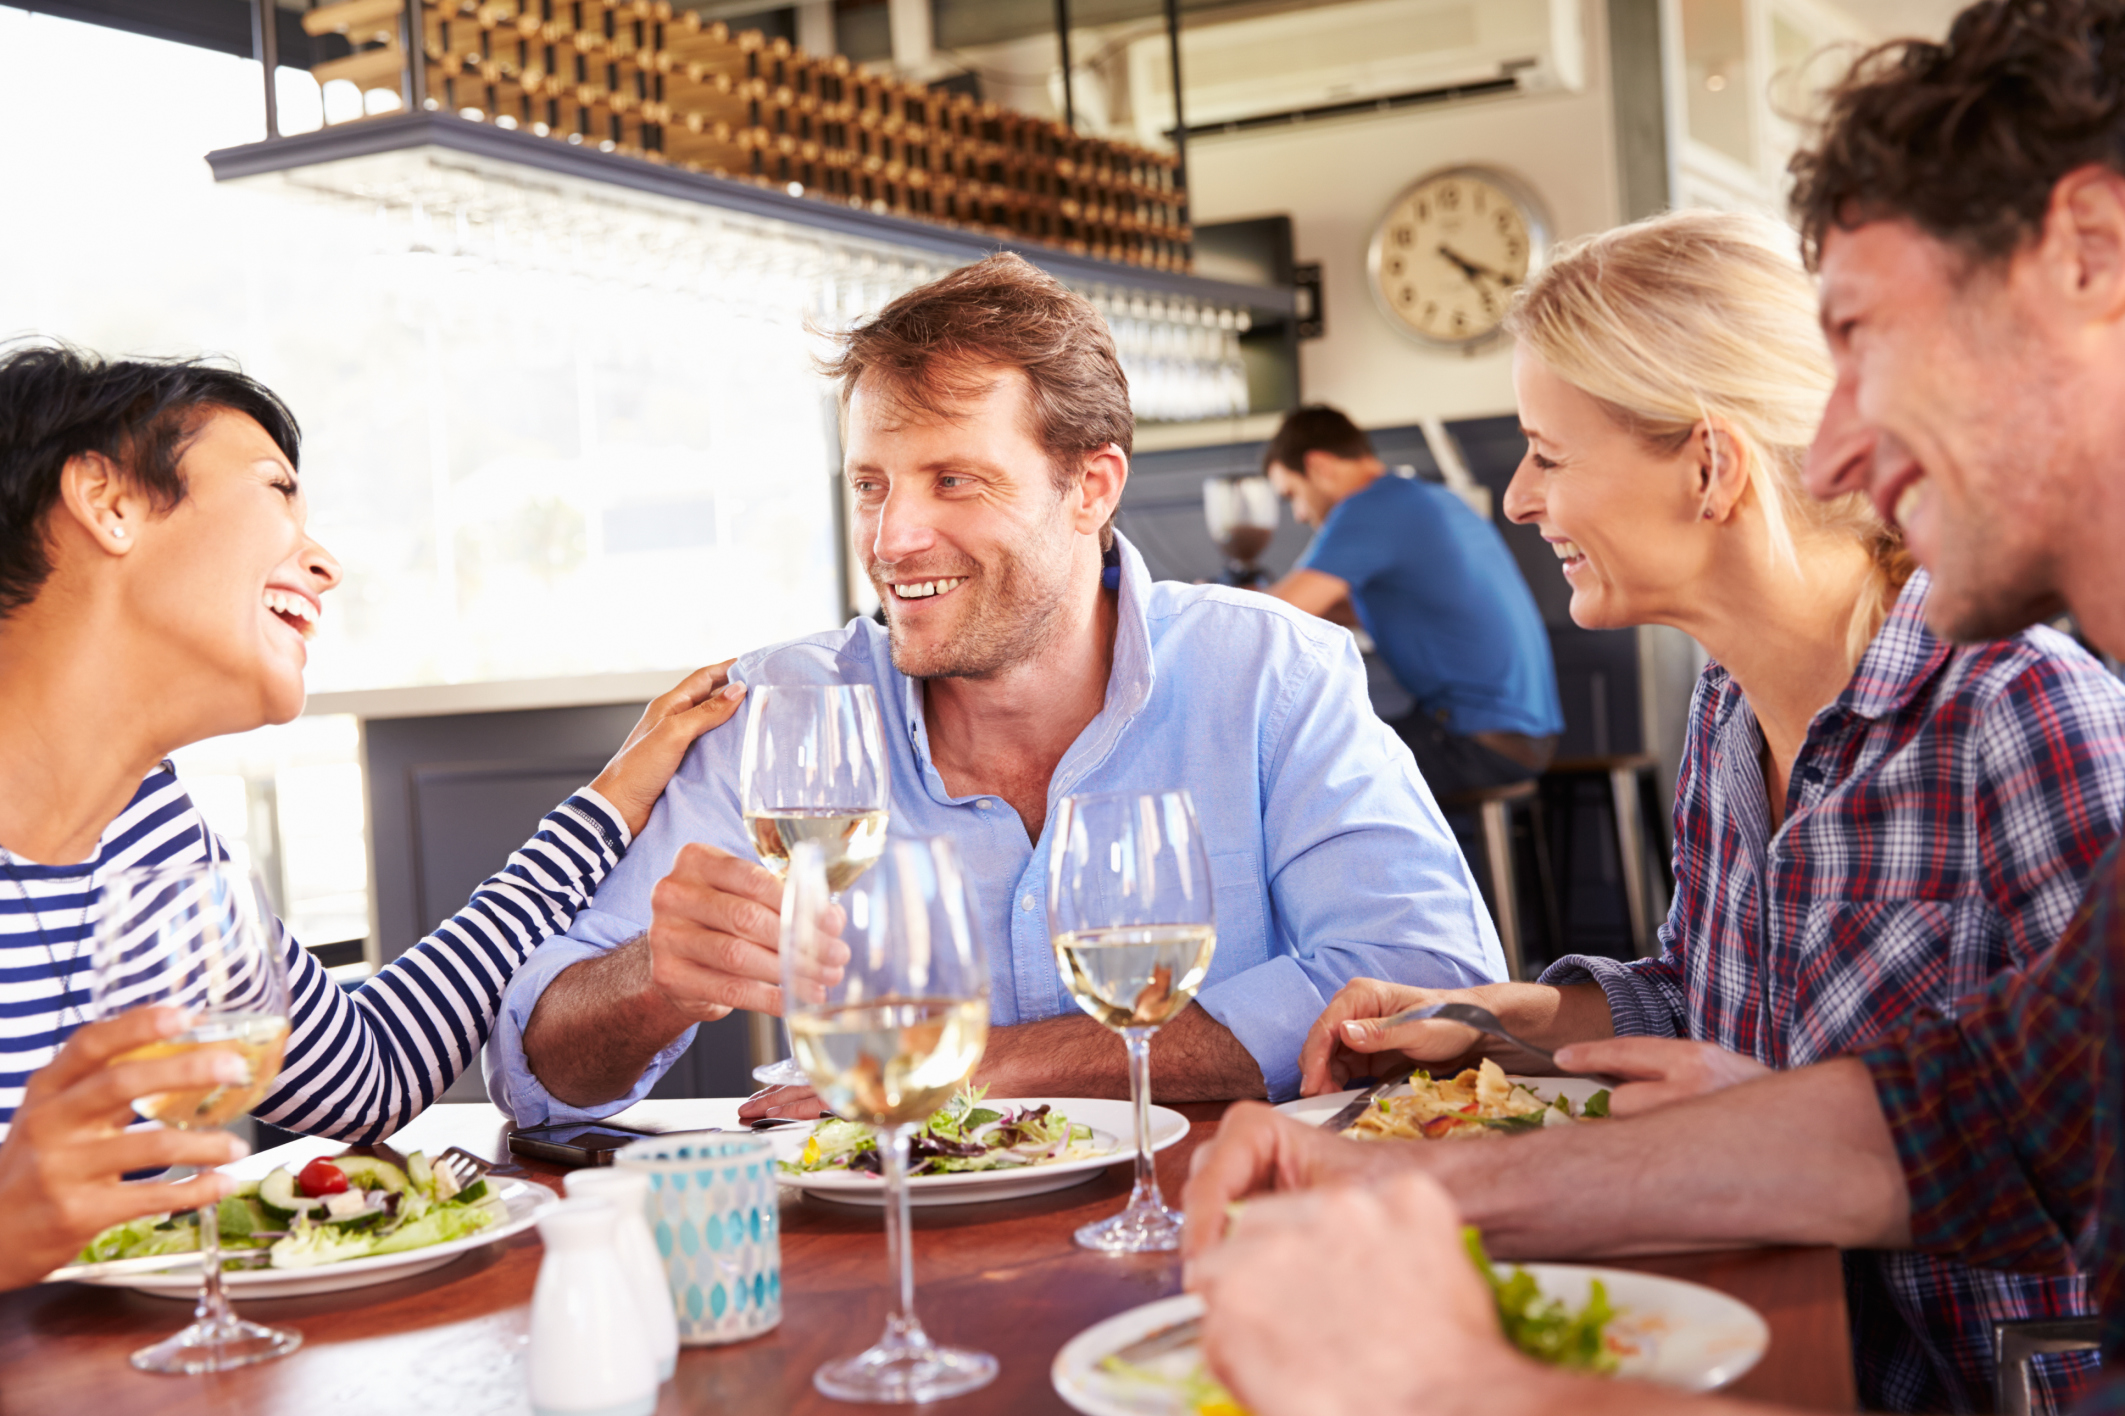 Men eat more in front of women, study finds